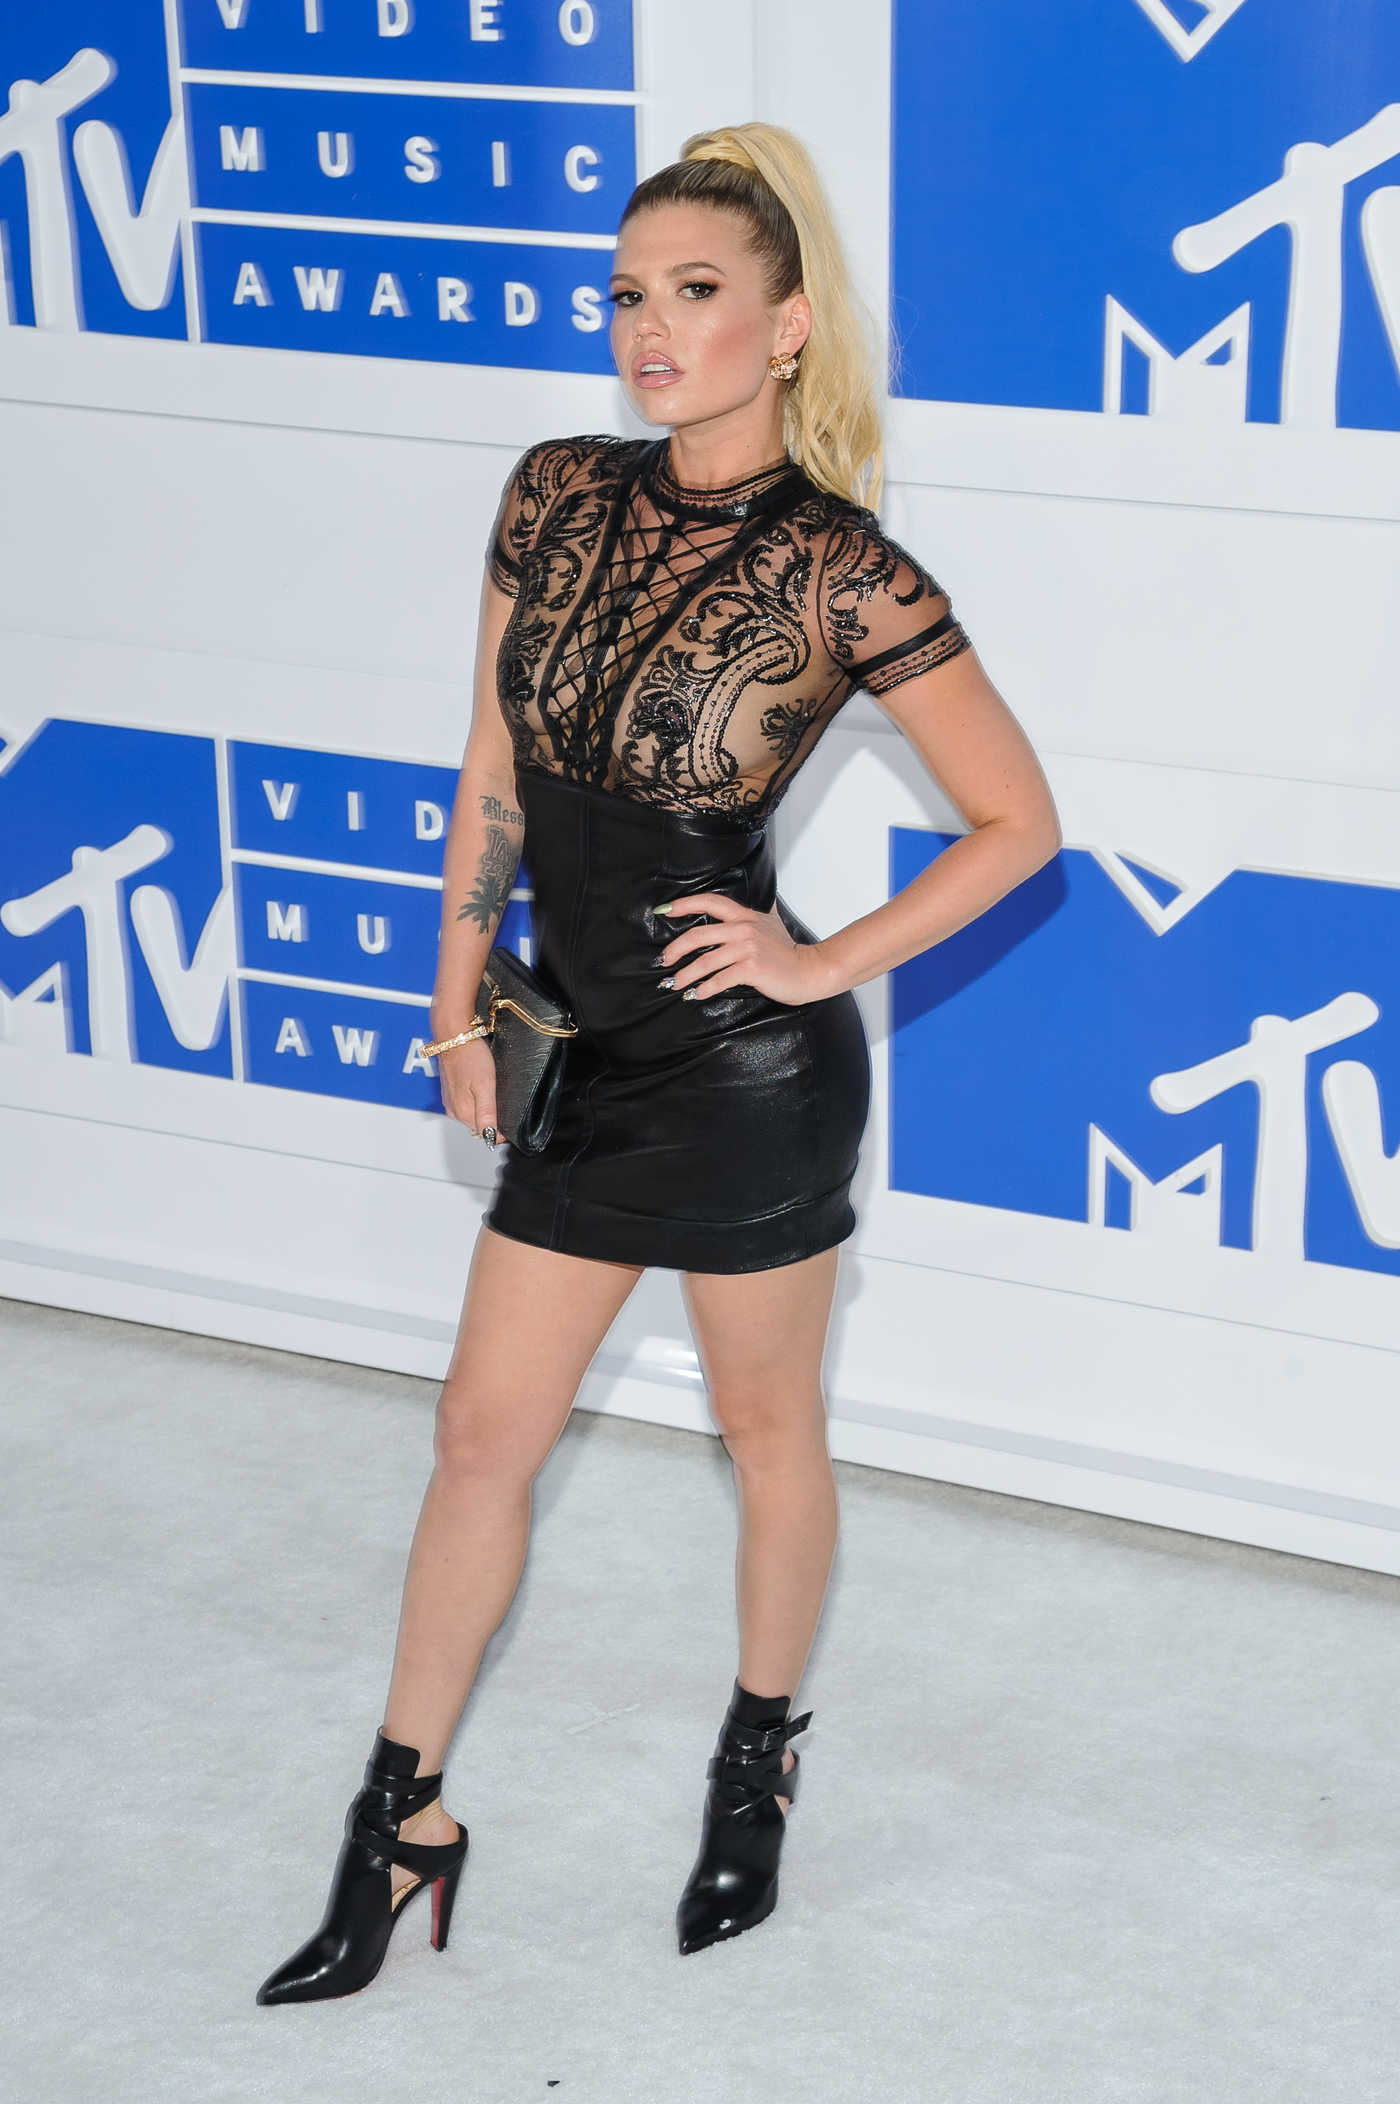 Chanel West Coast at 2016 MTV Video Music Awards at Madison Square Garden in New York 08/28/2016